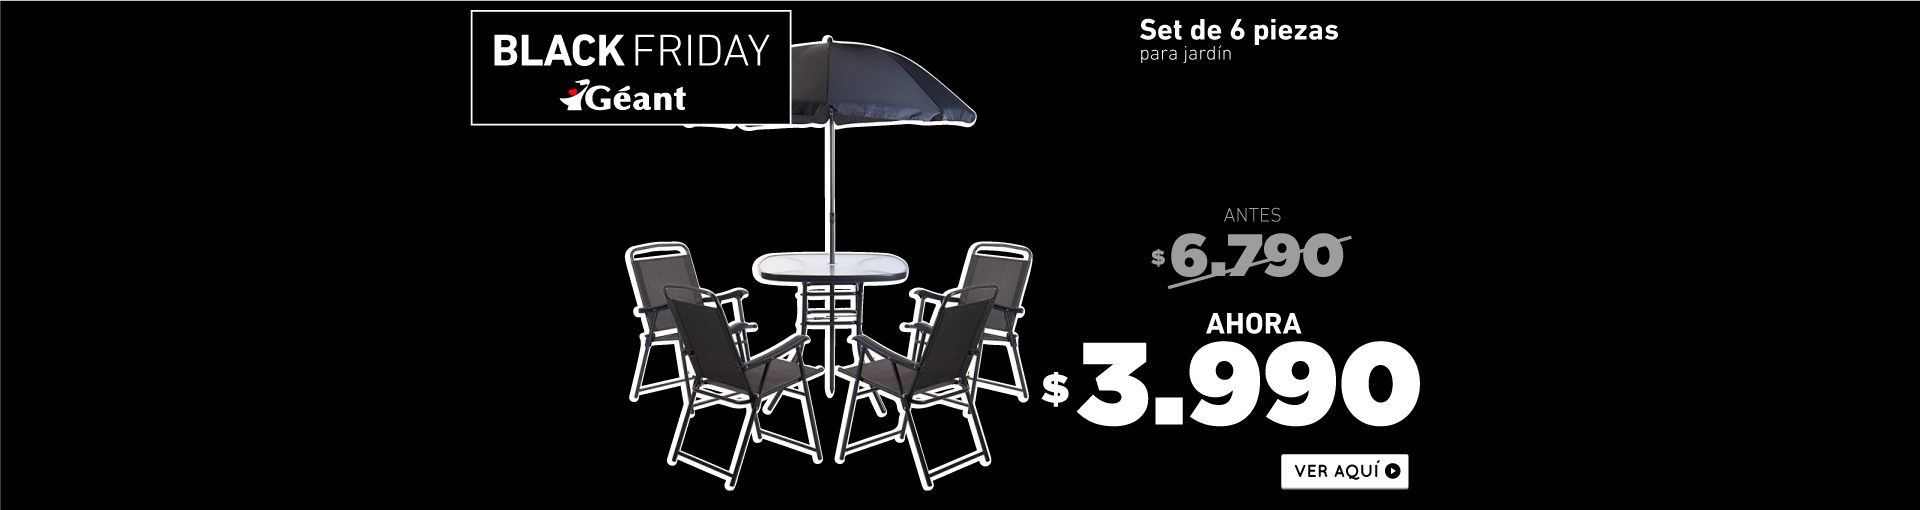 h-06-534984-set-de-6-piezas--BLACKFRIDAY